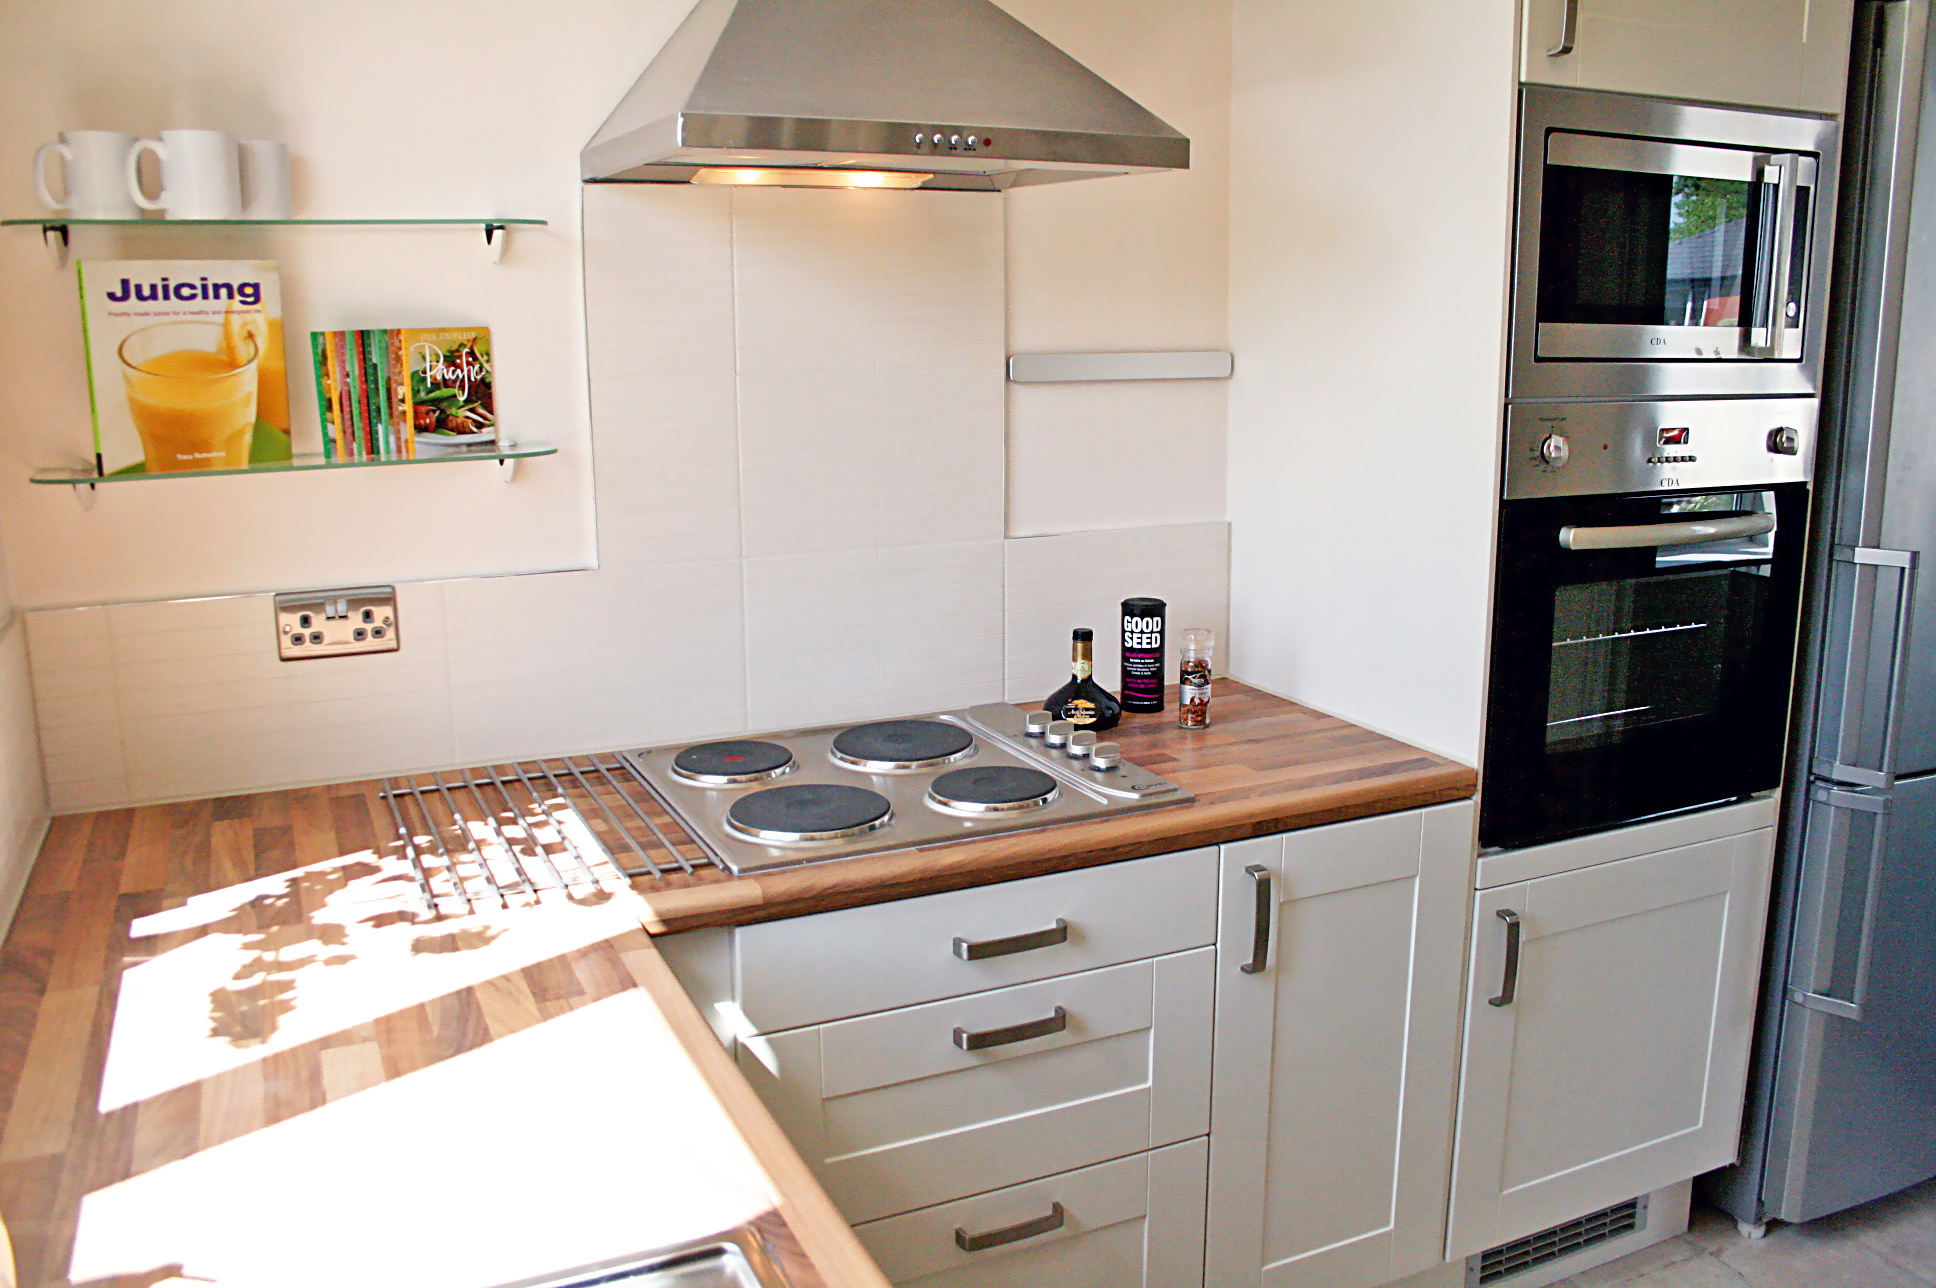 Ikea Kitchen Birch ikea kitchen adel birch birch cabinets pinterest am dolce vita